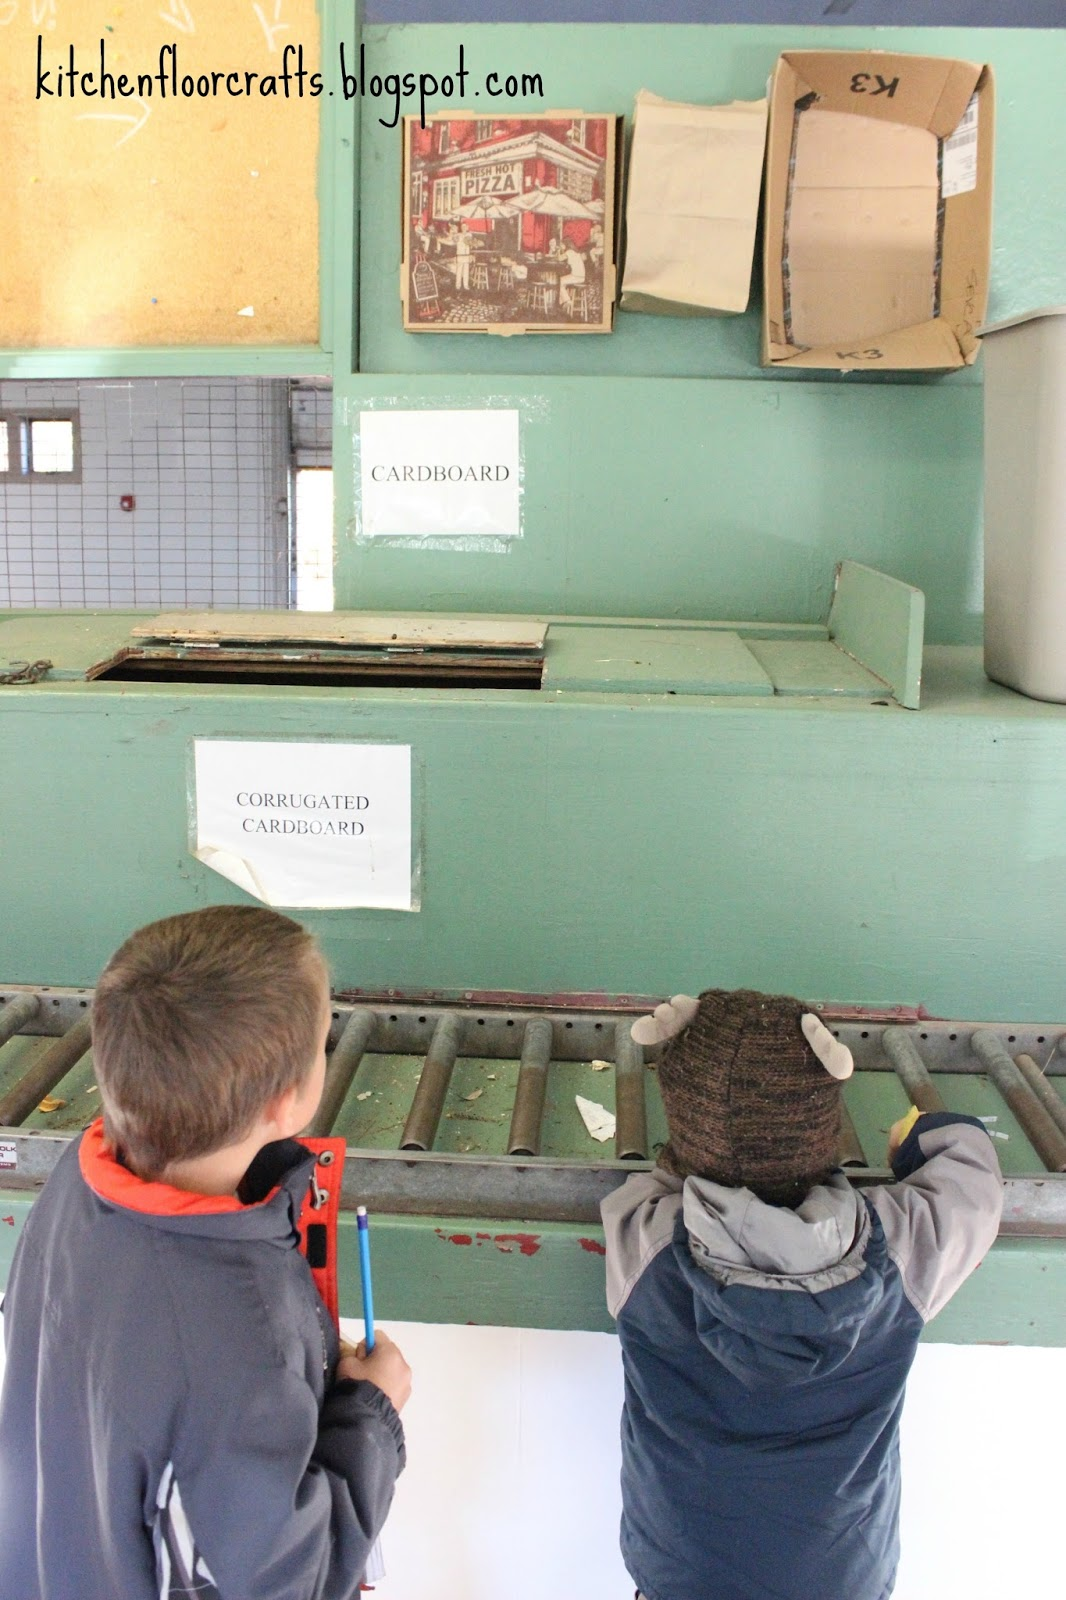 Kitchen Floor Crafts: Exploring A Recycling Center (Learning ...